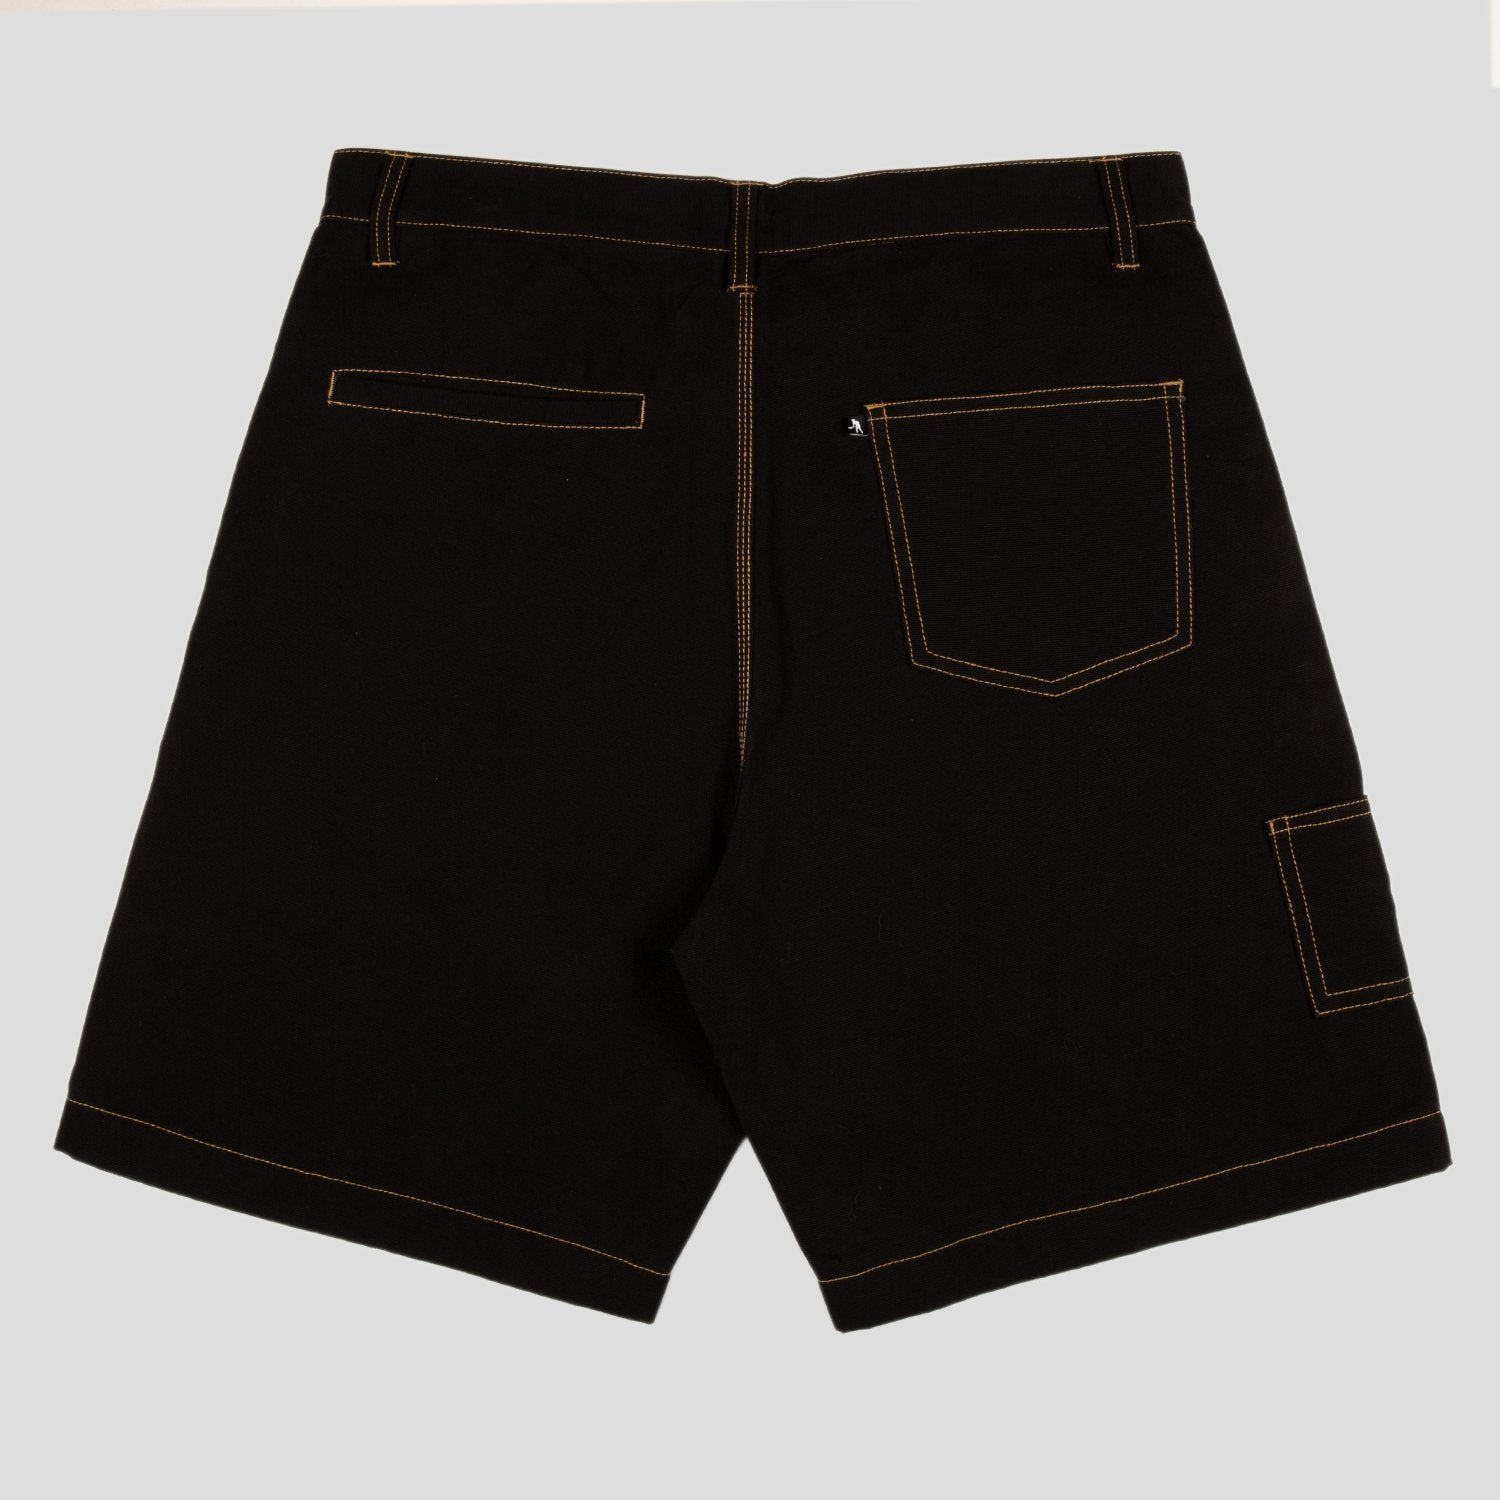 Movers Shorts (Black/Gold)